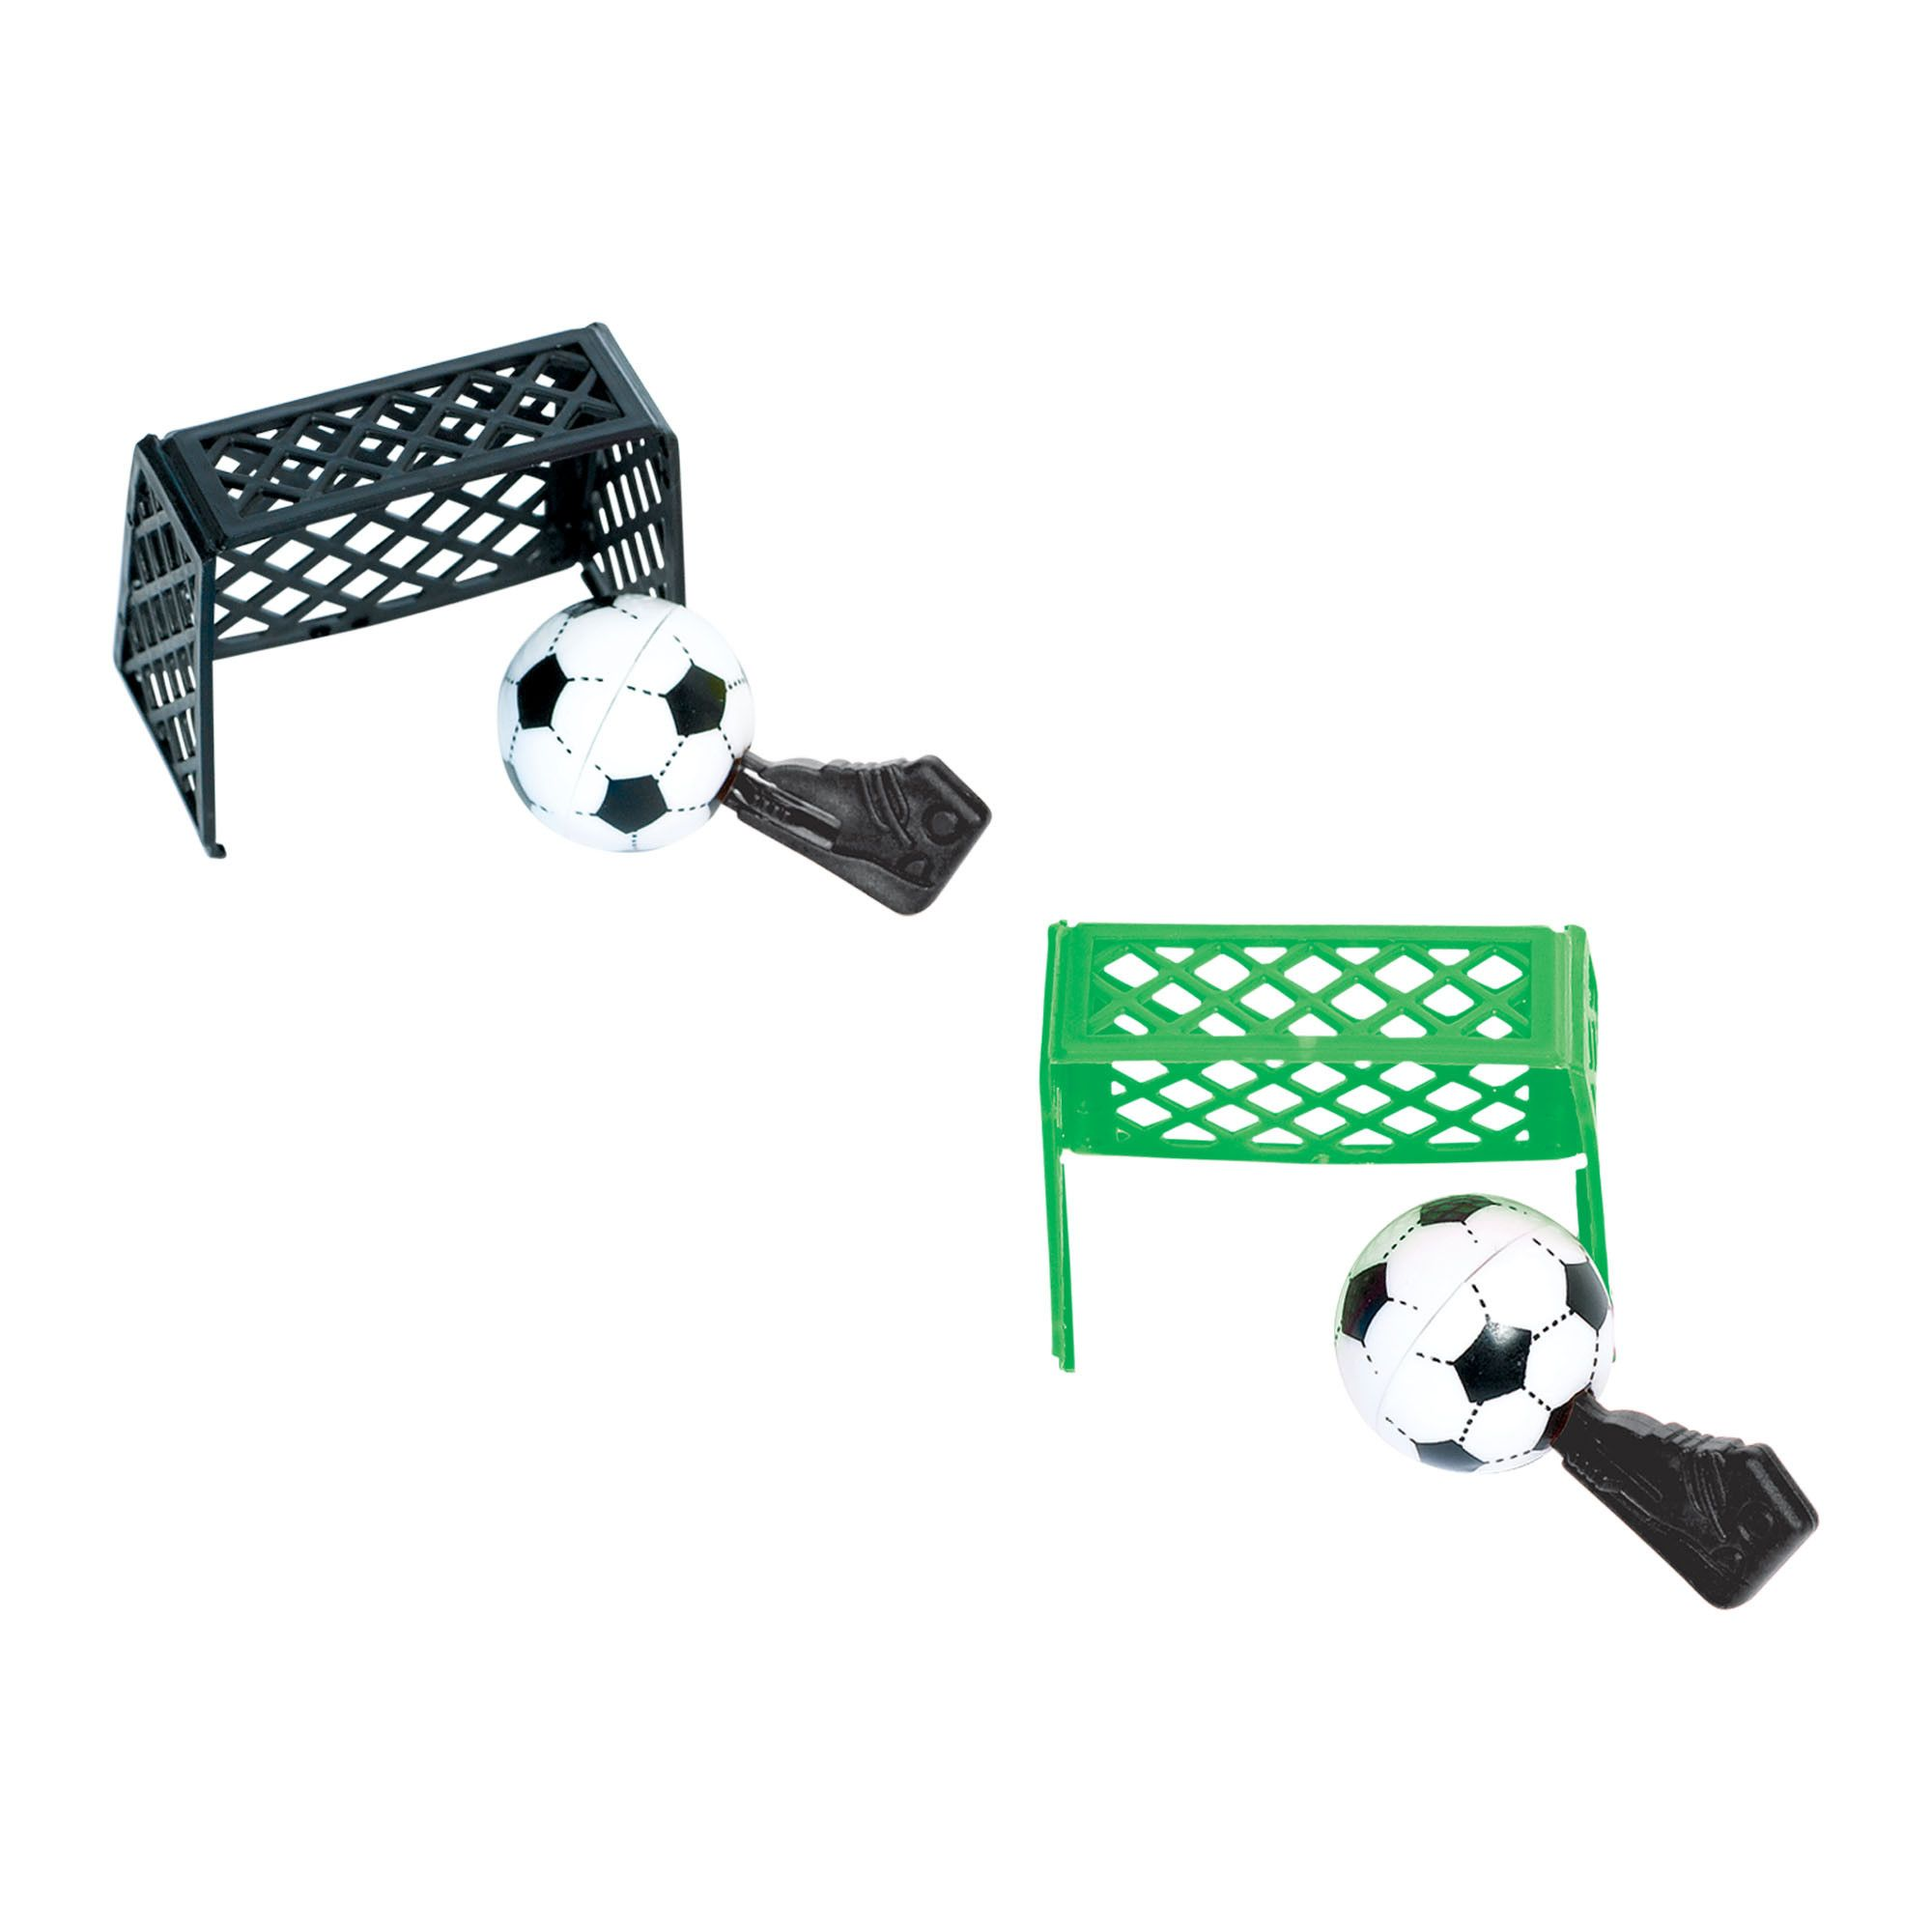 Goal Getter Tabletop Soccer Game